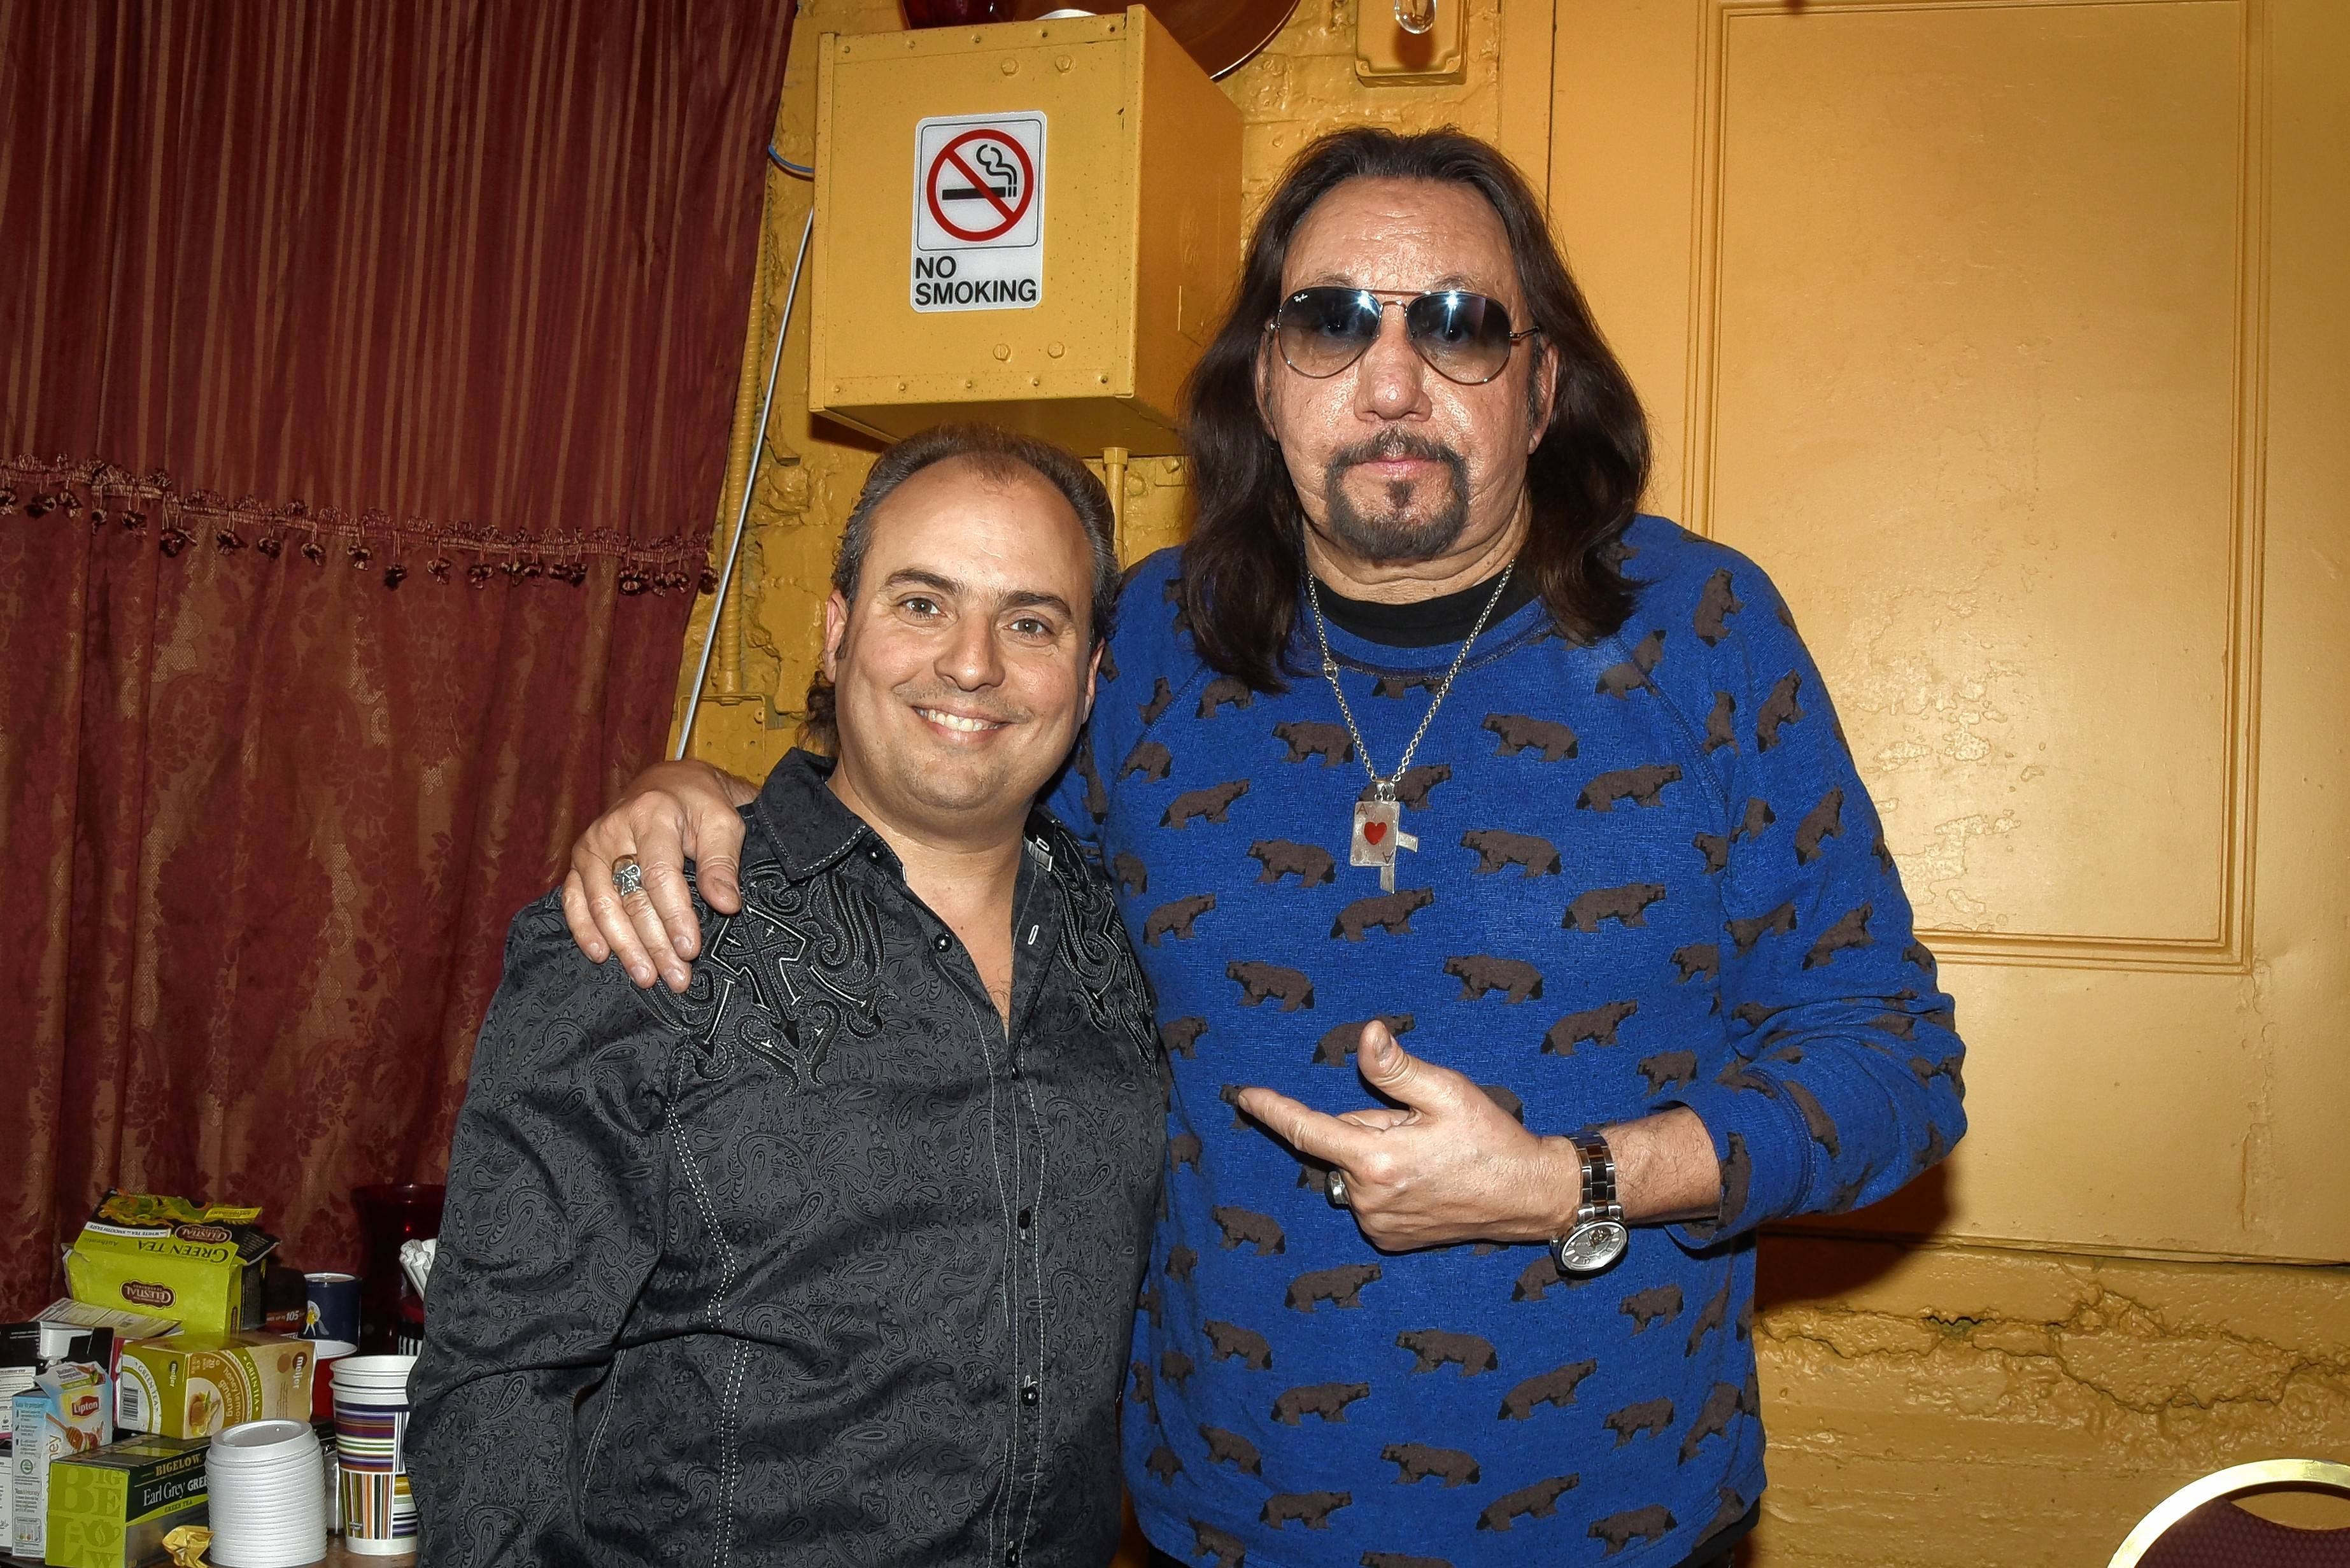 Ace Frehley, right, one of the founding members of KISS, and Ron Onesti during a previous gig.